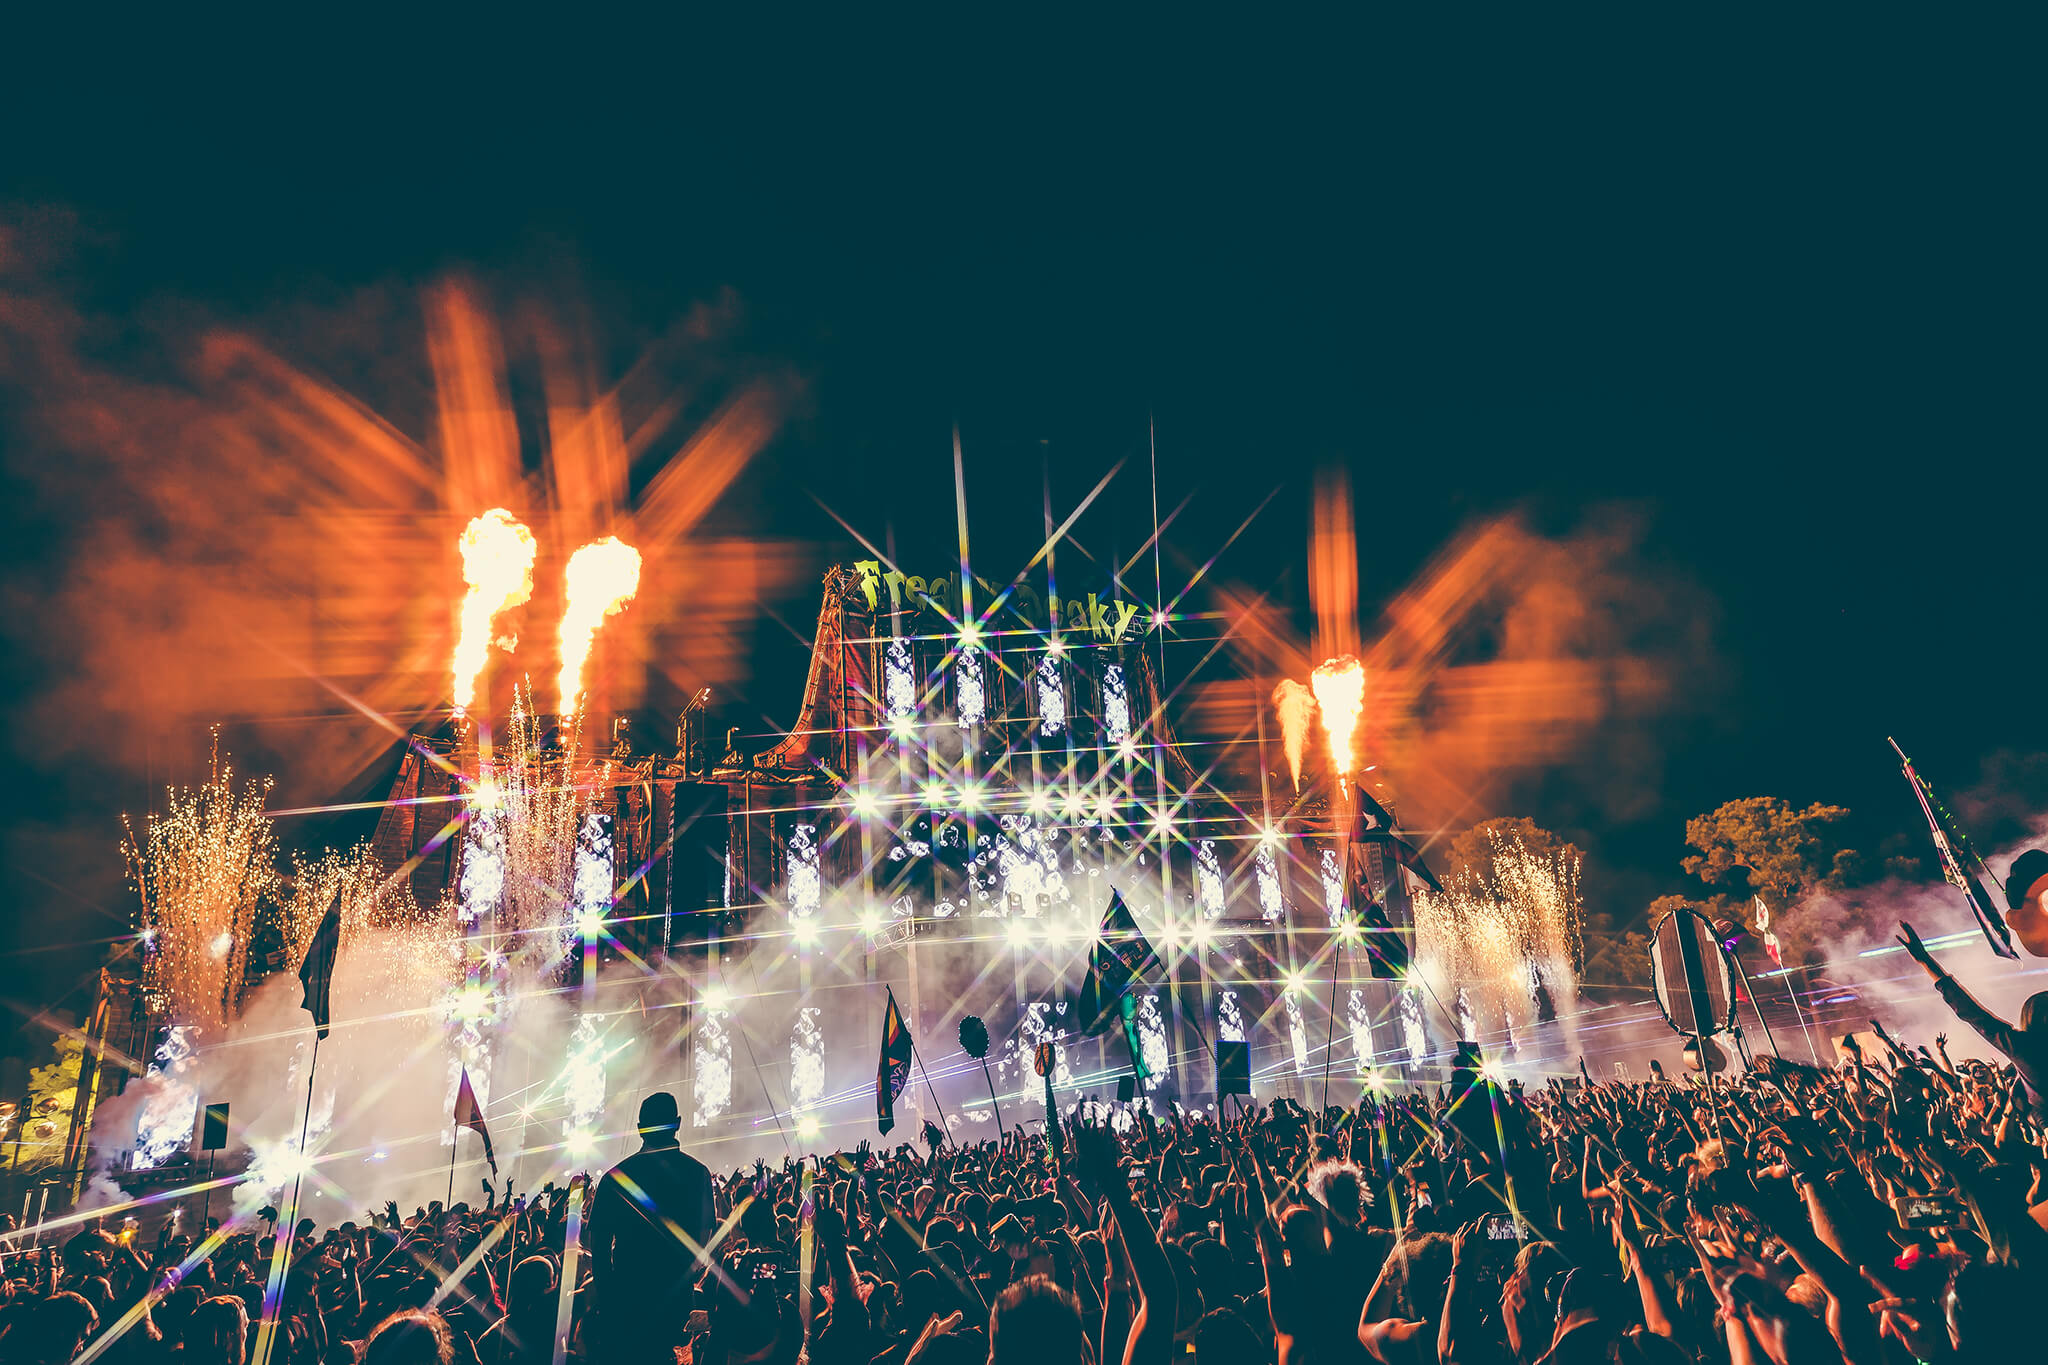 main stage vibes with pyro and special effects